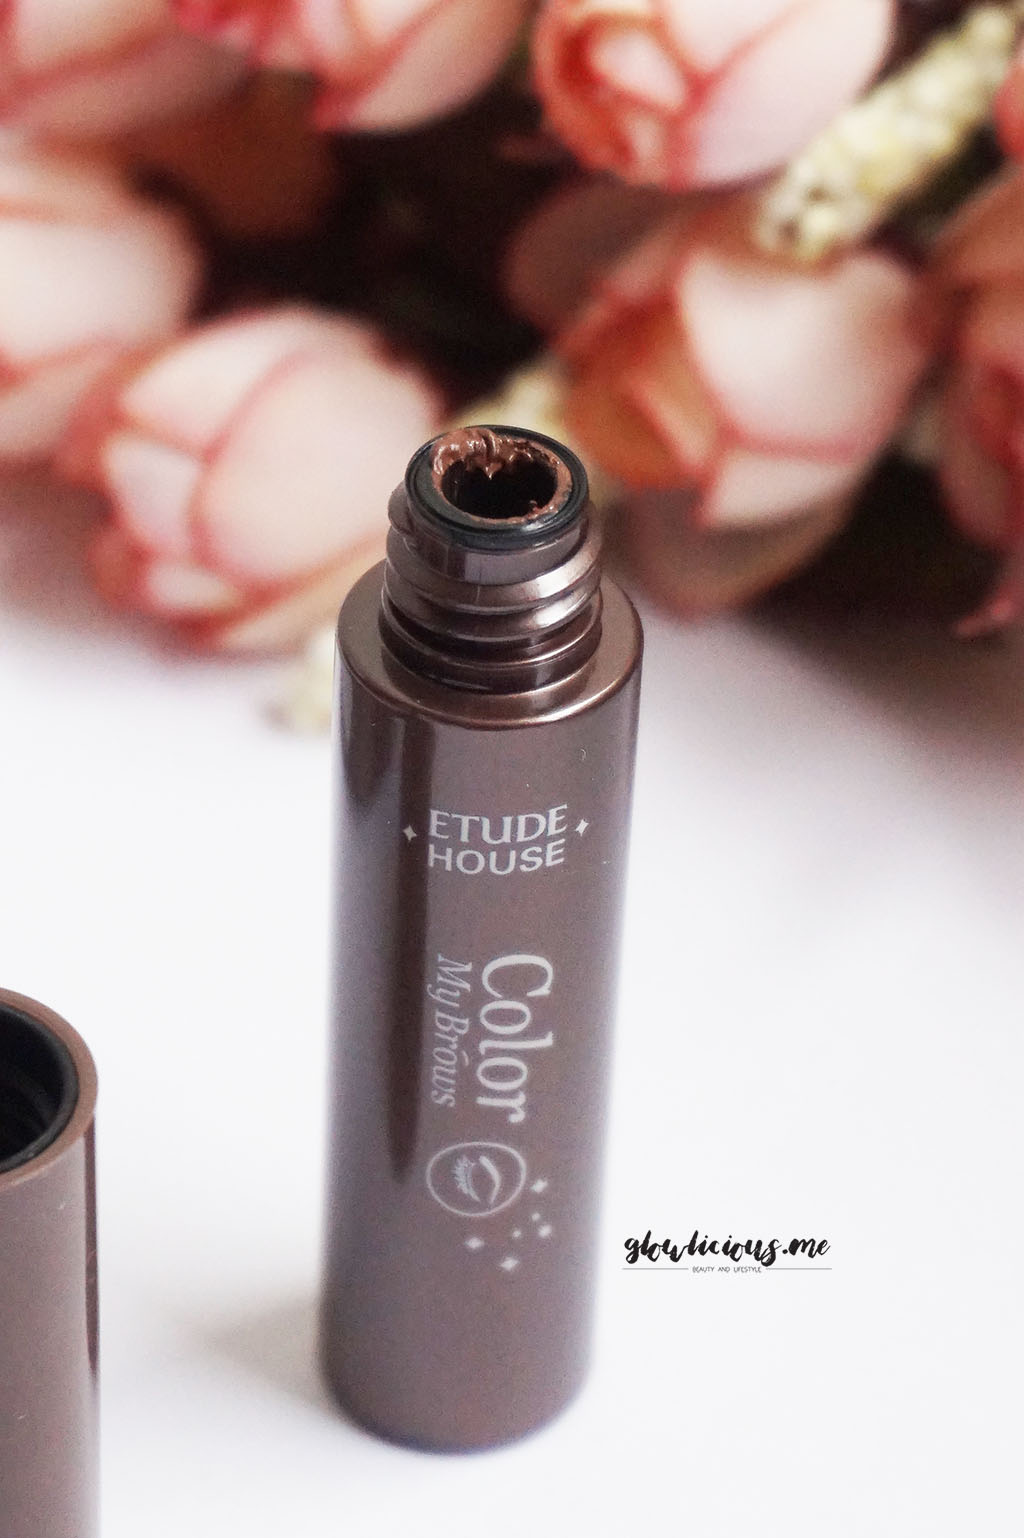 Etude House Color My Brow in Rich Brown